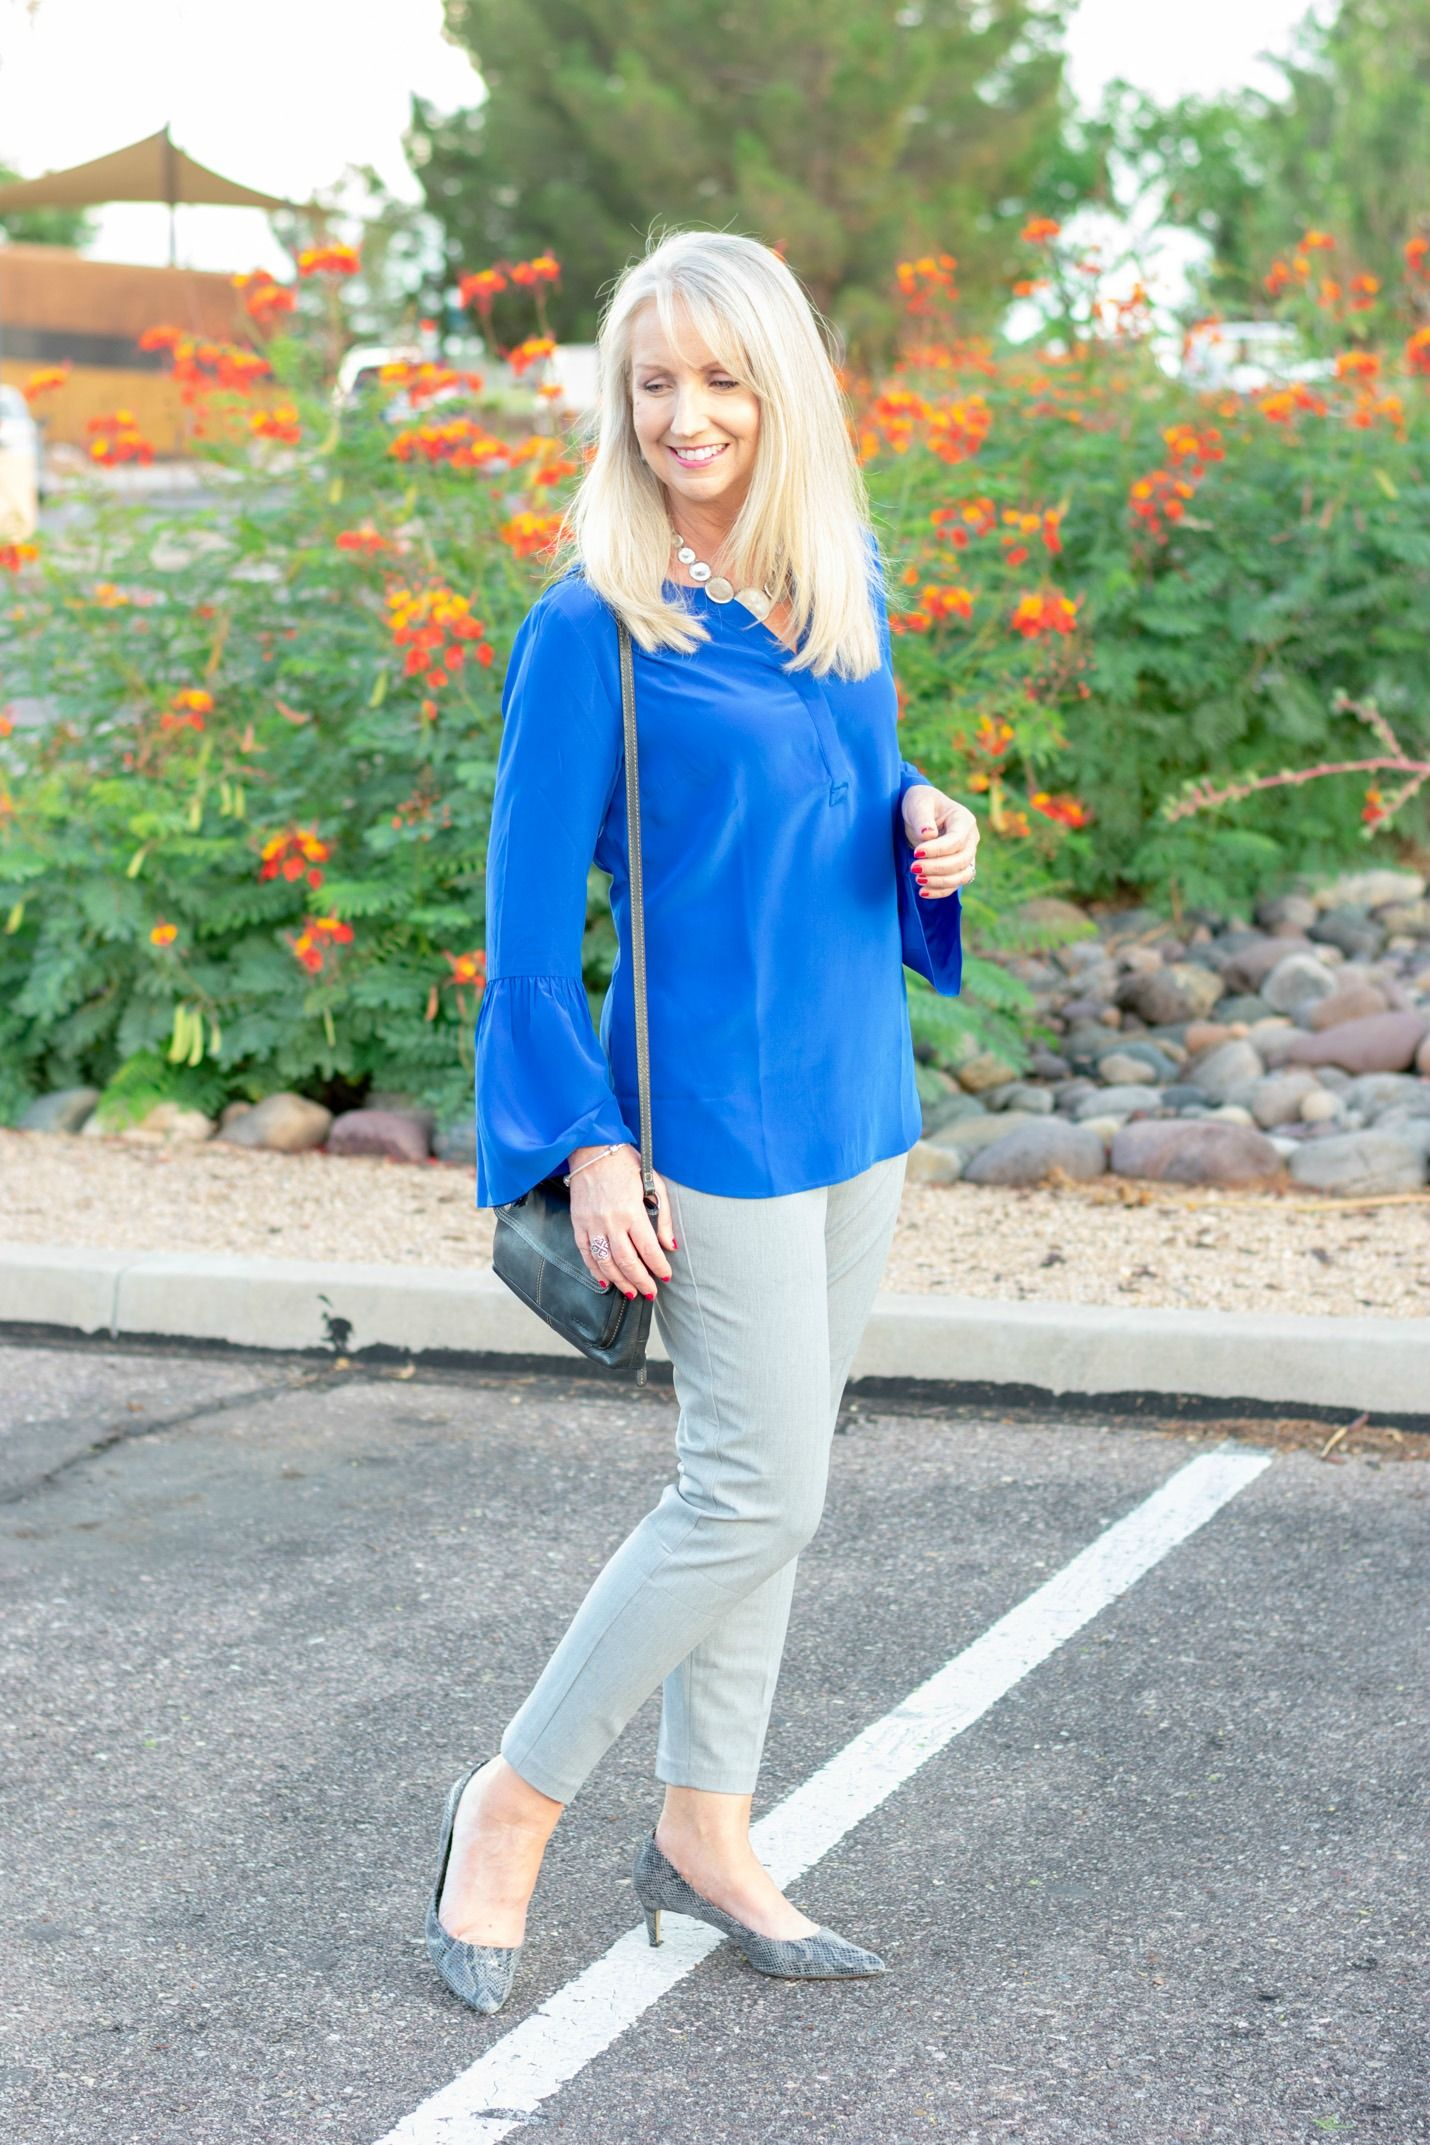 e1c3c0ba75f Working the pull-on pants. Add a pop-over top in a brilliant color ...